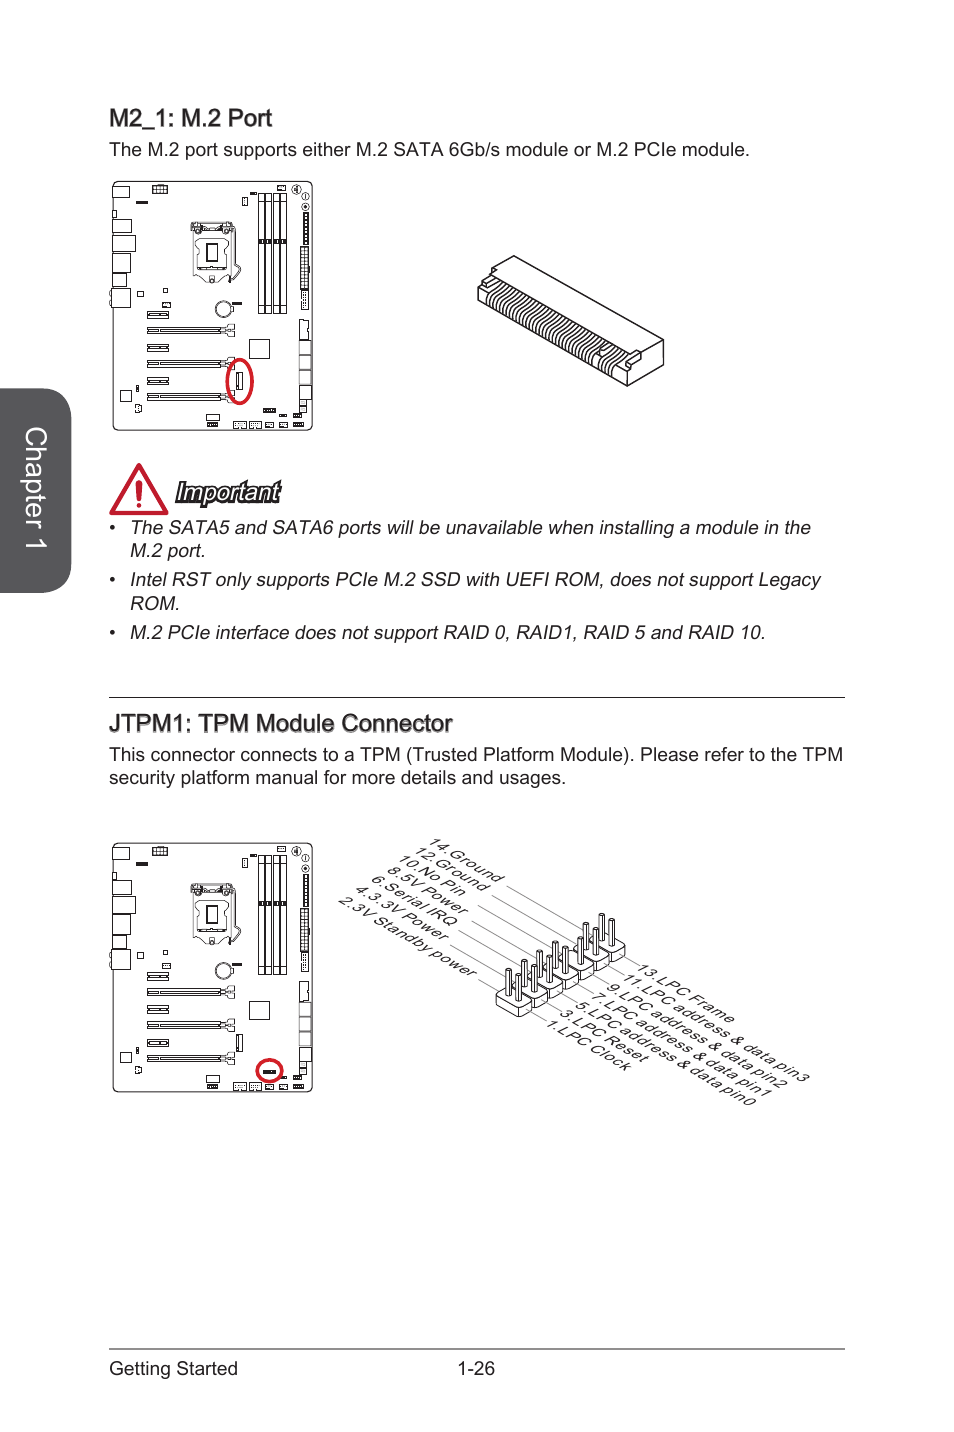 M2 1 Port 26 Jtpm1 Tpm Module Connector Msi Motherboard Diagram Z97 Gaming 9 Ac Manual User Page 40 112